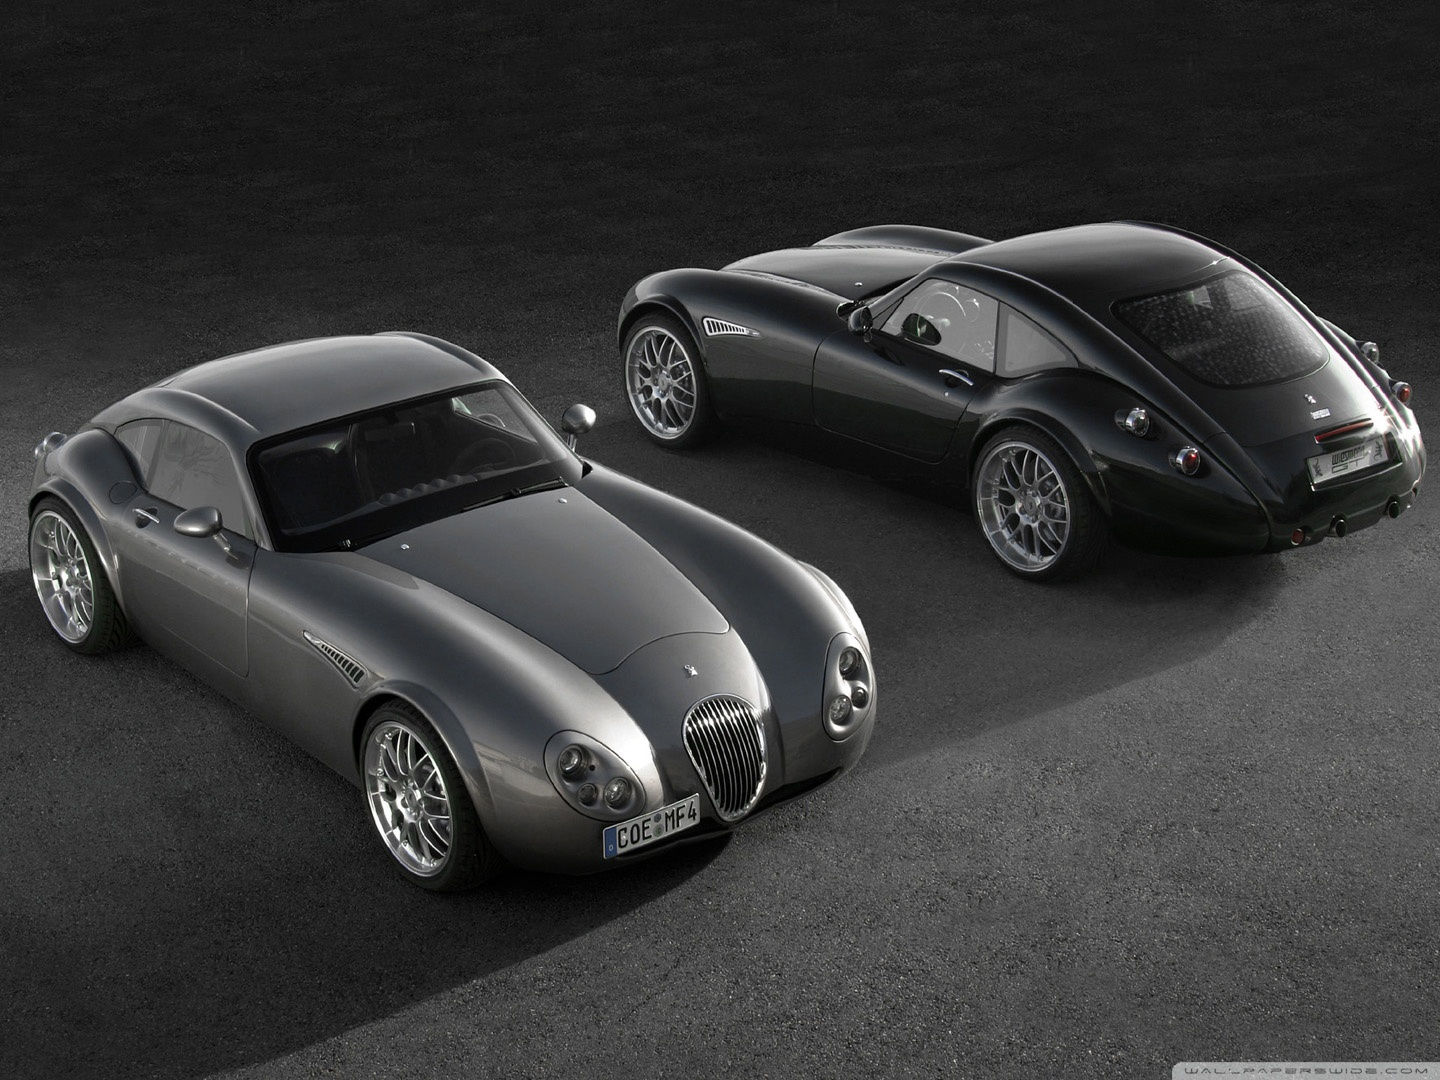 1440x1080 - Wiesmann GT MF4 Wallpapers 30